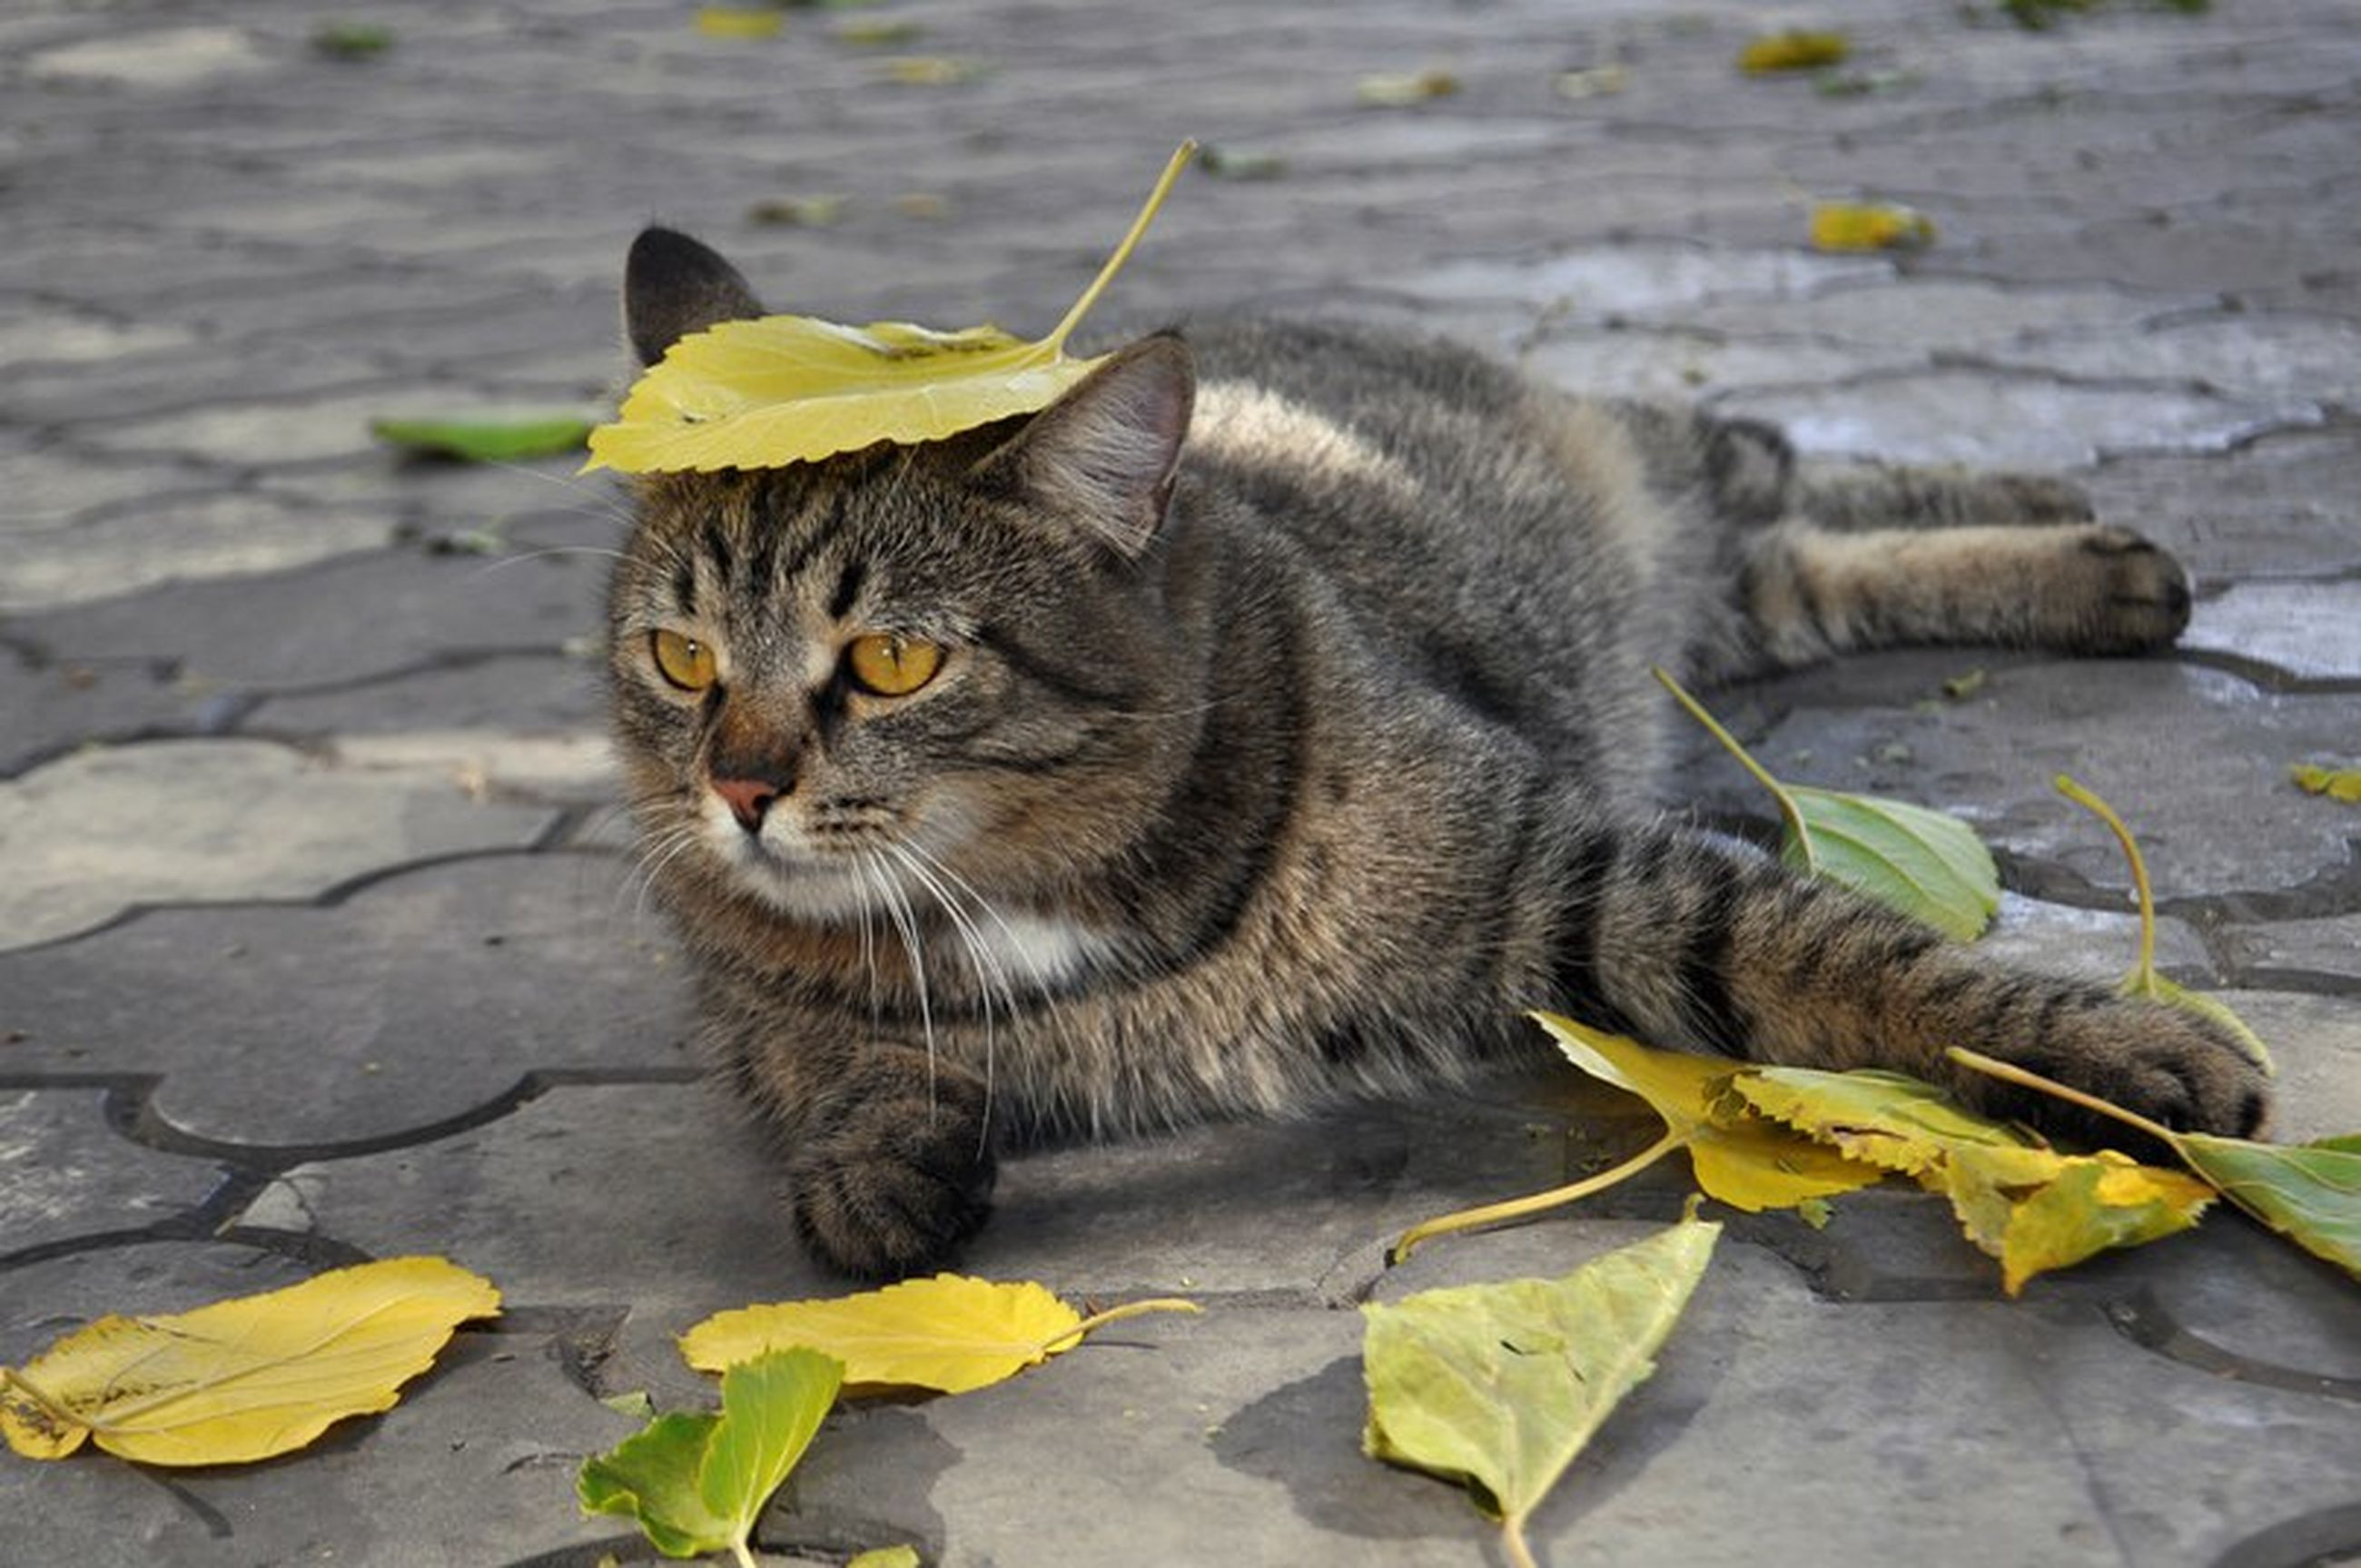 domestic cat, cat, one animal, animal themes, feline, pets, mammal, domestic animals, whisker, yellow, leaf, sitting, focus on foreground, outdoors, day, relaxation, close-up, looking away, nature, portrait